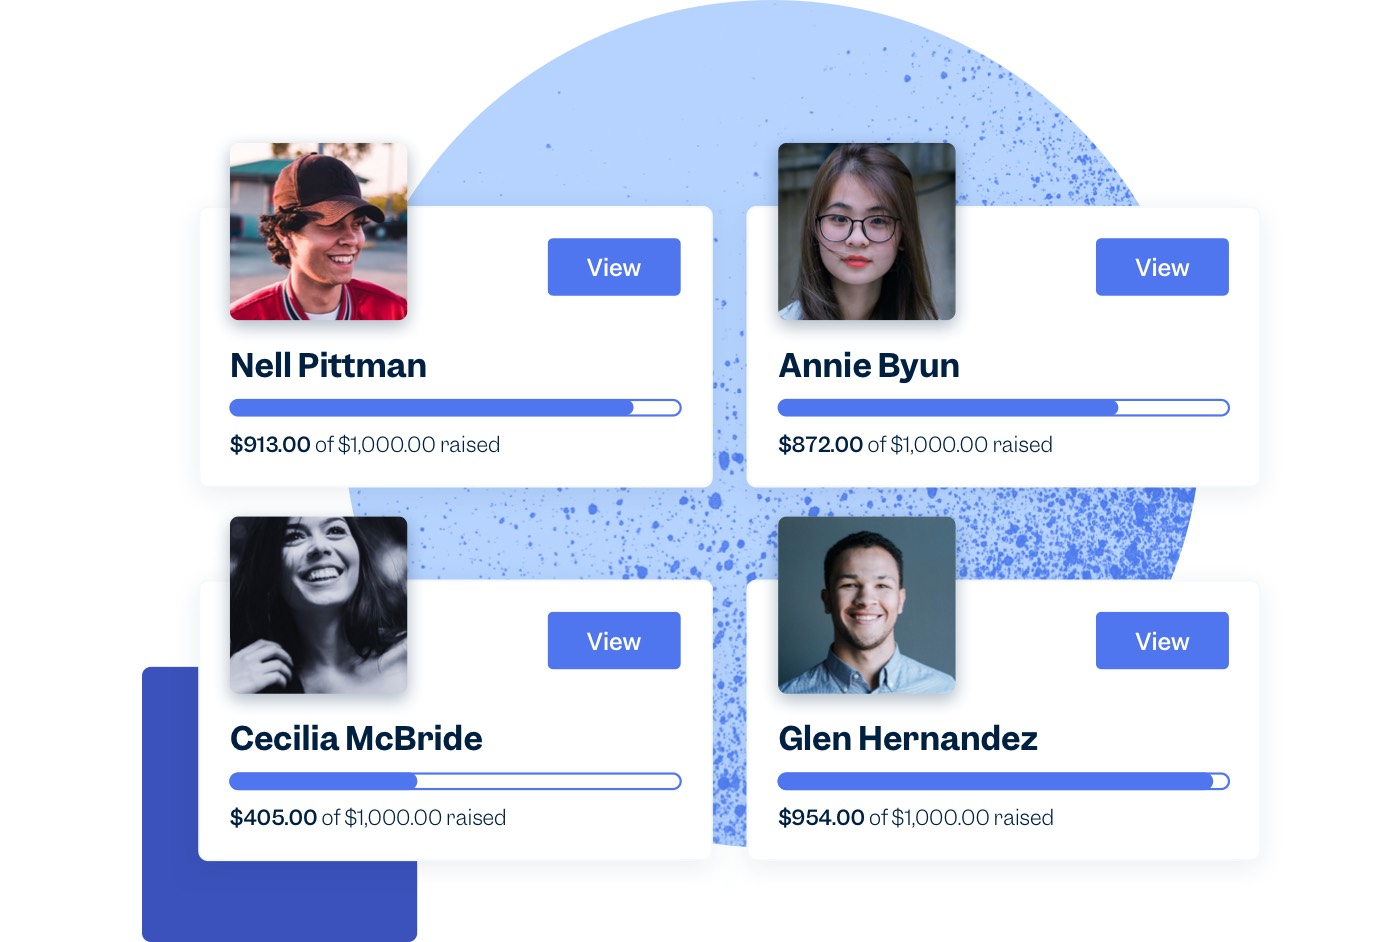 Four peer-to-peer fundraisers' profile photos are displayed along with progress bars showing how much they've each fundraised for your nonprofit.